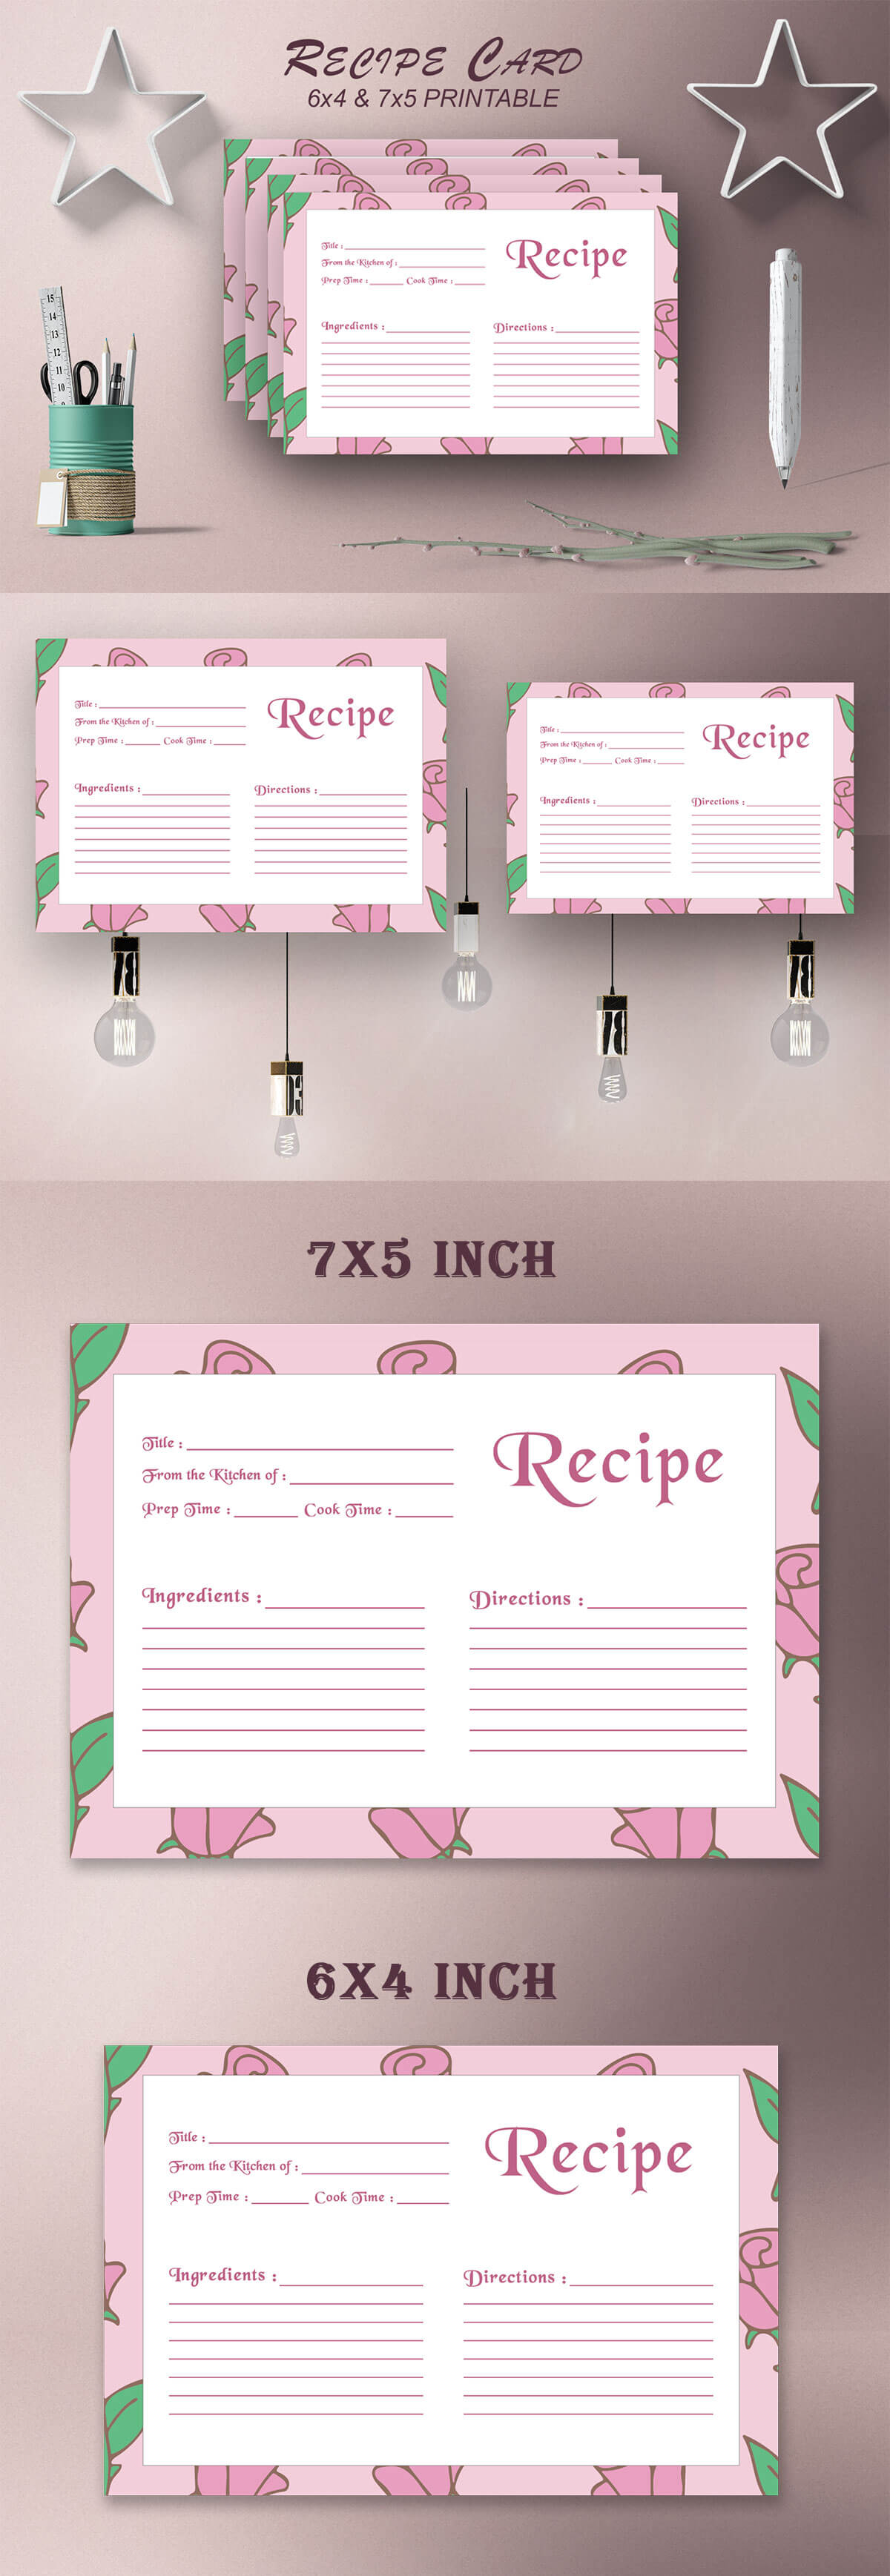 Free Recipe Card Printable Template V15